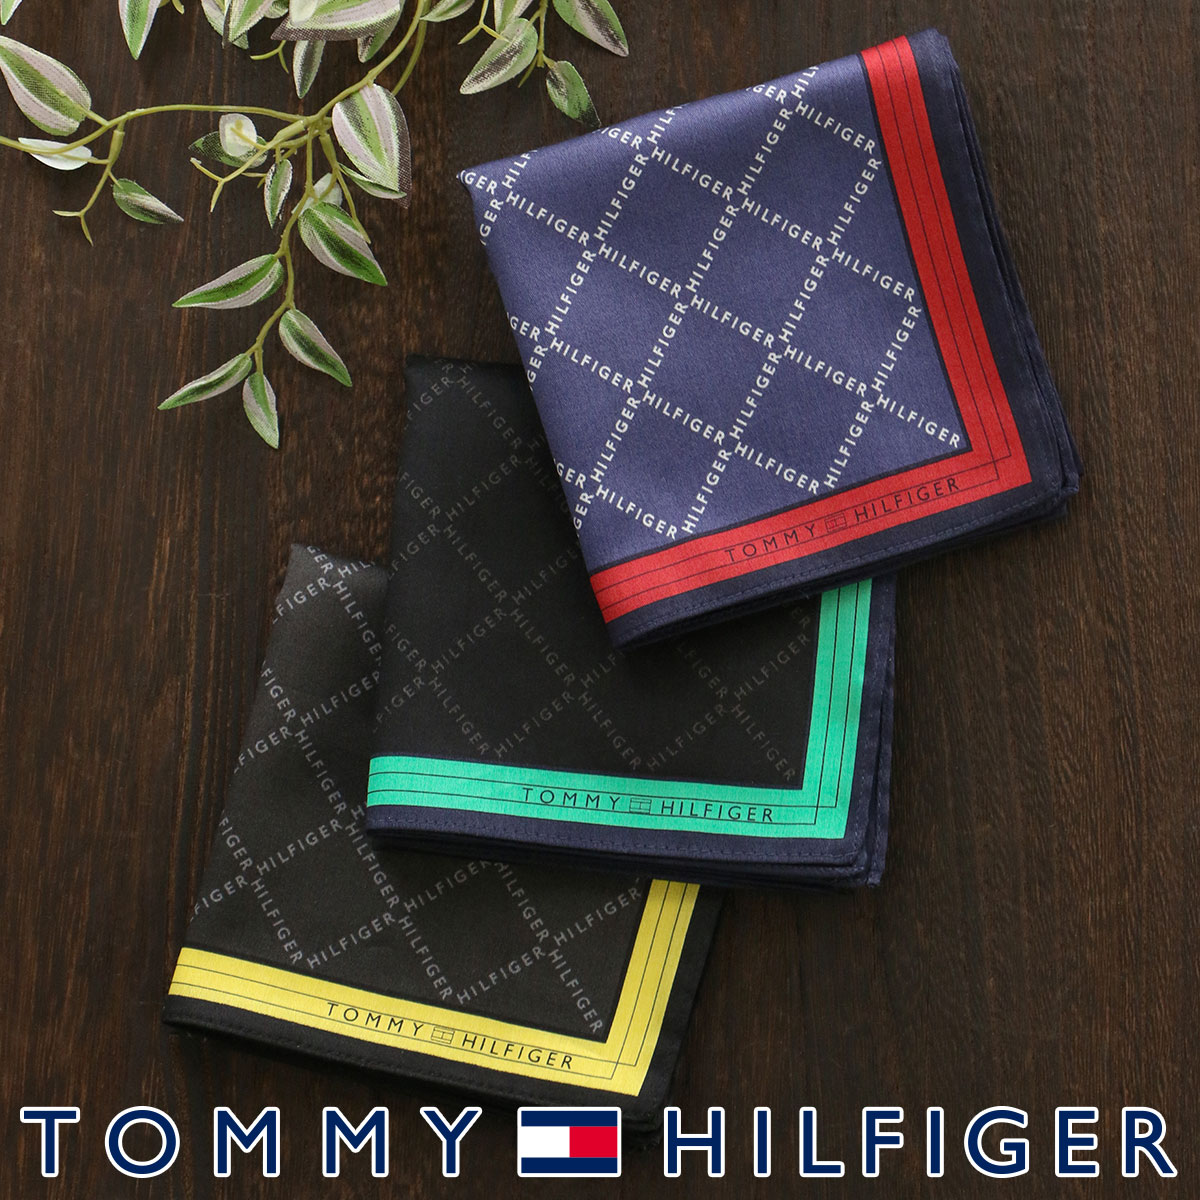 TOMMY HILFIGER トミーヒルフィガー 綿100% ハンカチ ロゴ×チェック柄 プレゼント 贈答 ギフト 02582152 プレゼント ギフト【ゆうパケット・4点まで】